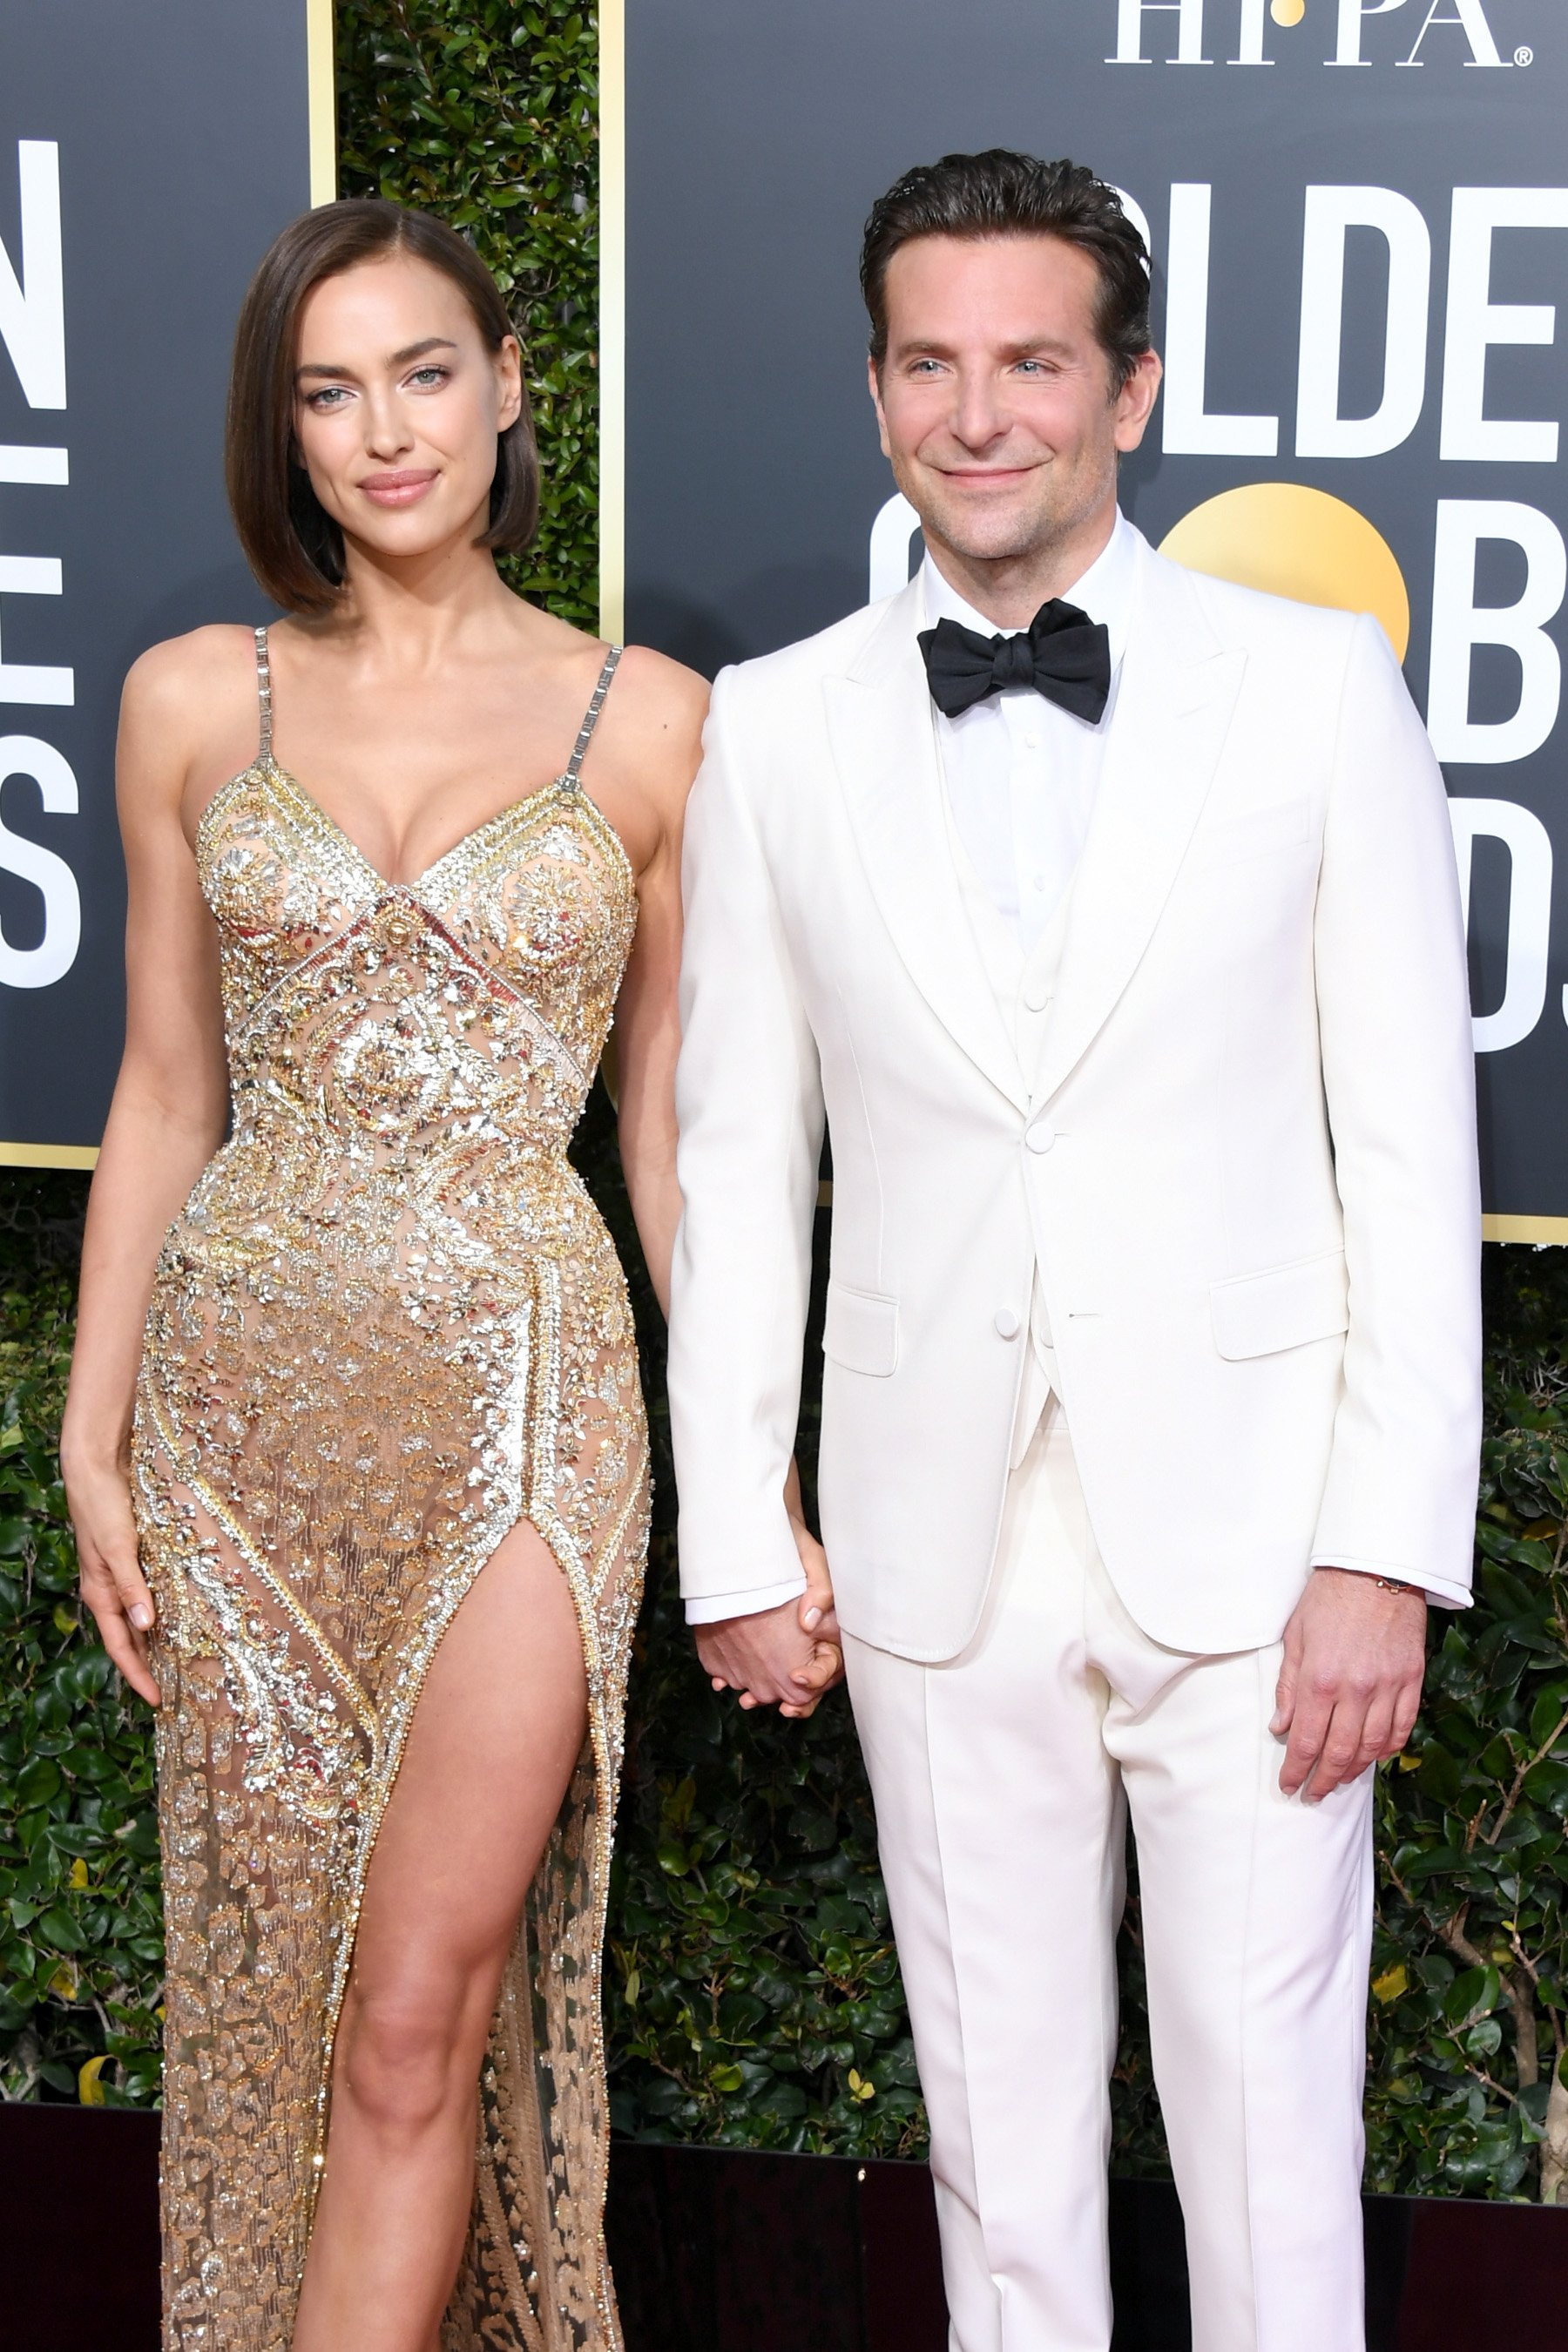 Irina Shayk and Bradley Cooper at the 76th Annual Golden Globe Awards on January 6, 2019, in Beverly Hills, California. | Photo: Getty Images